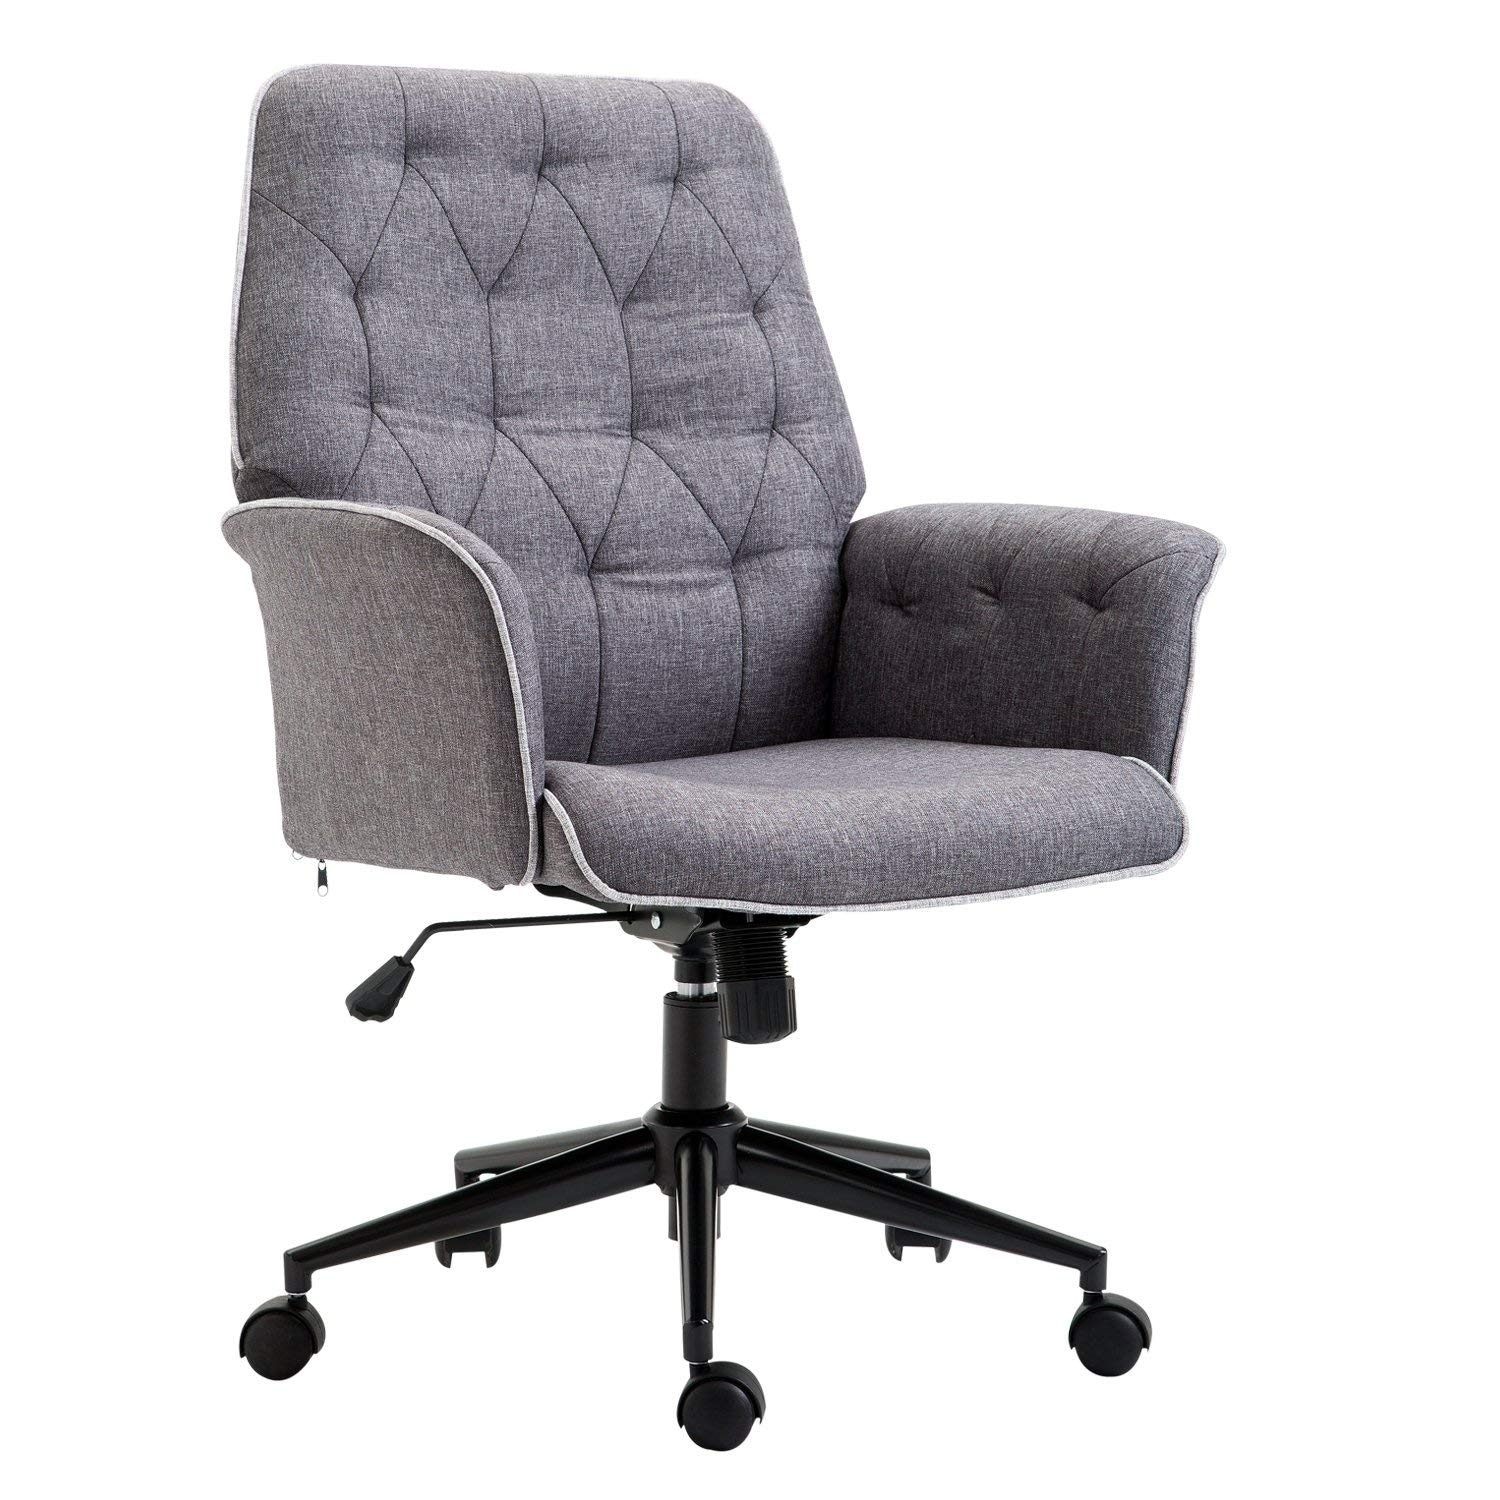 Homcom Fabric Office Chair Upholstered Low Back Padded Free Shipping Today 22405951